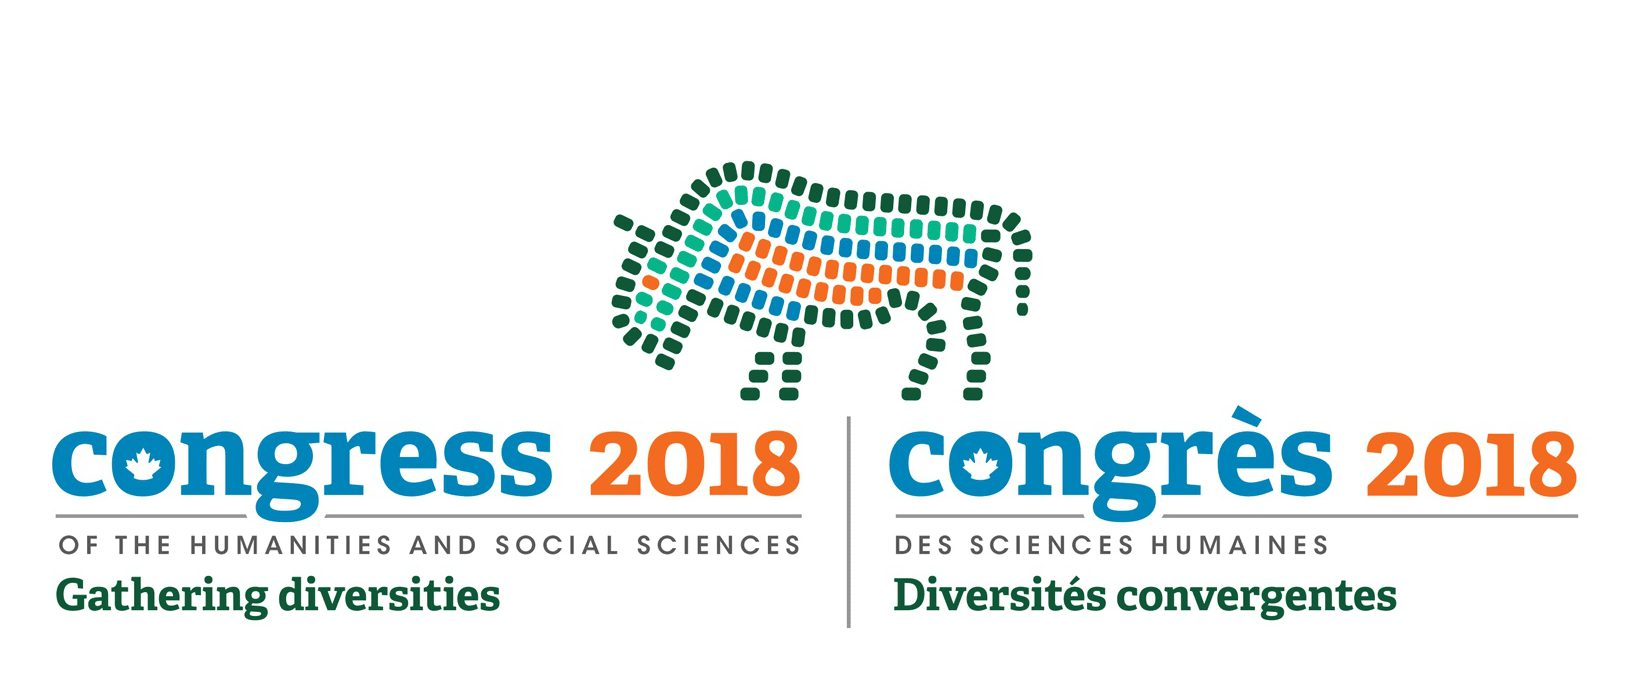 Congress 2018 is Hiring for Event Support